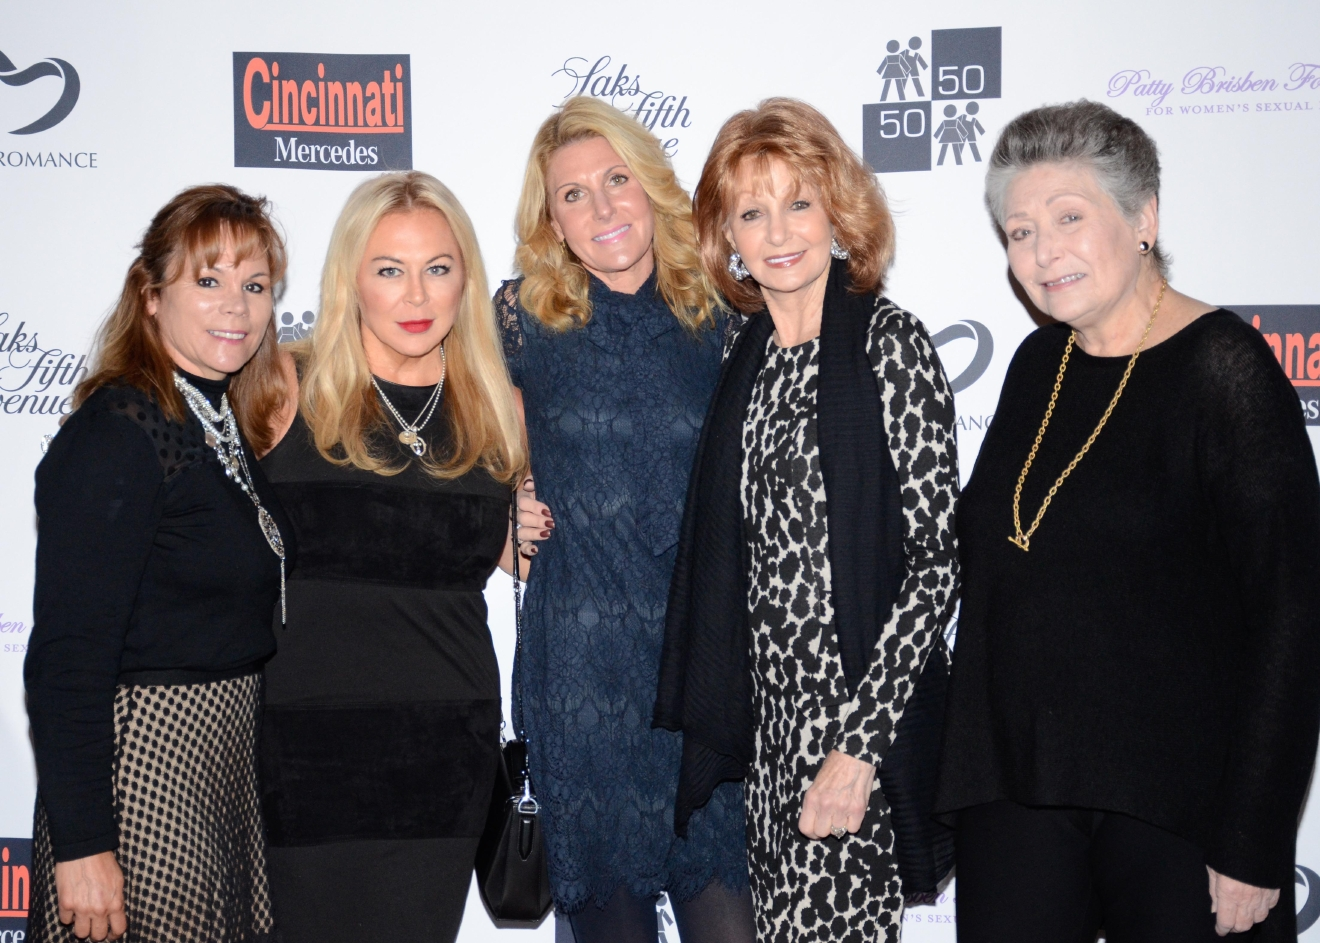 Jamie Cusick, Julia Wesselkamper, Julie Hill, Barbara Hahn, and Barbara Gould / Image: Bob White